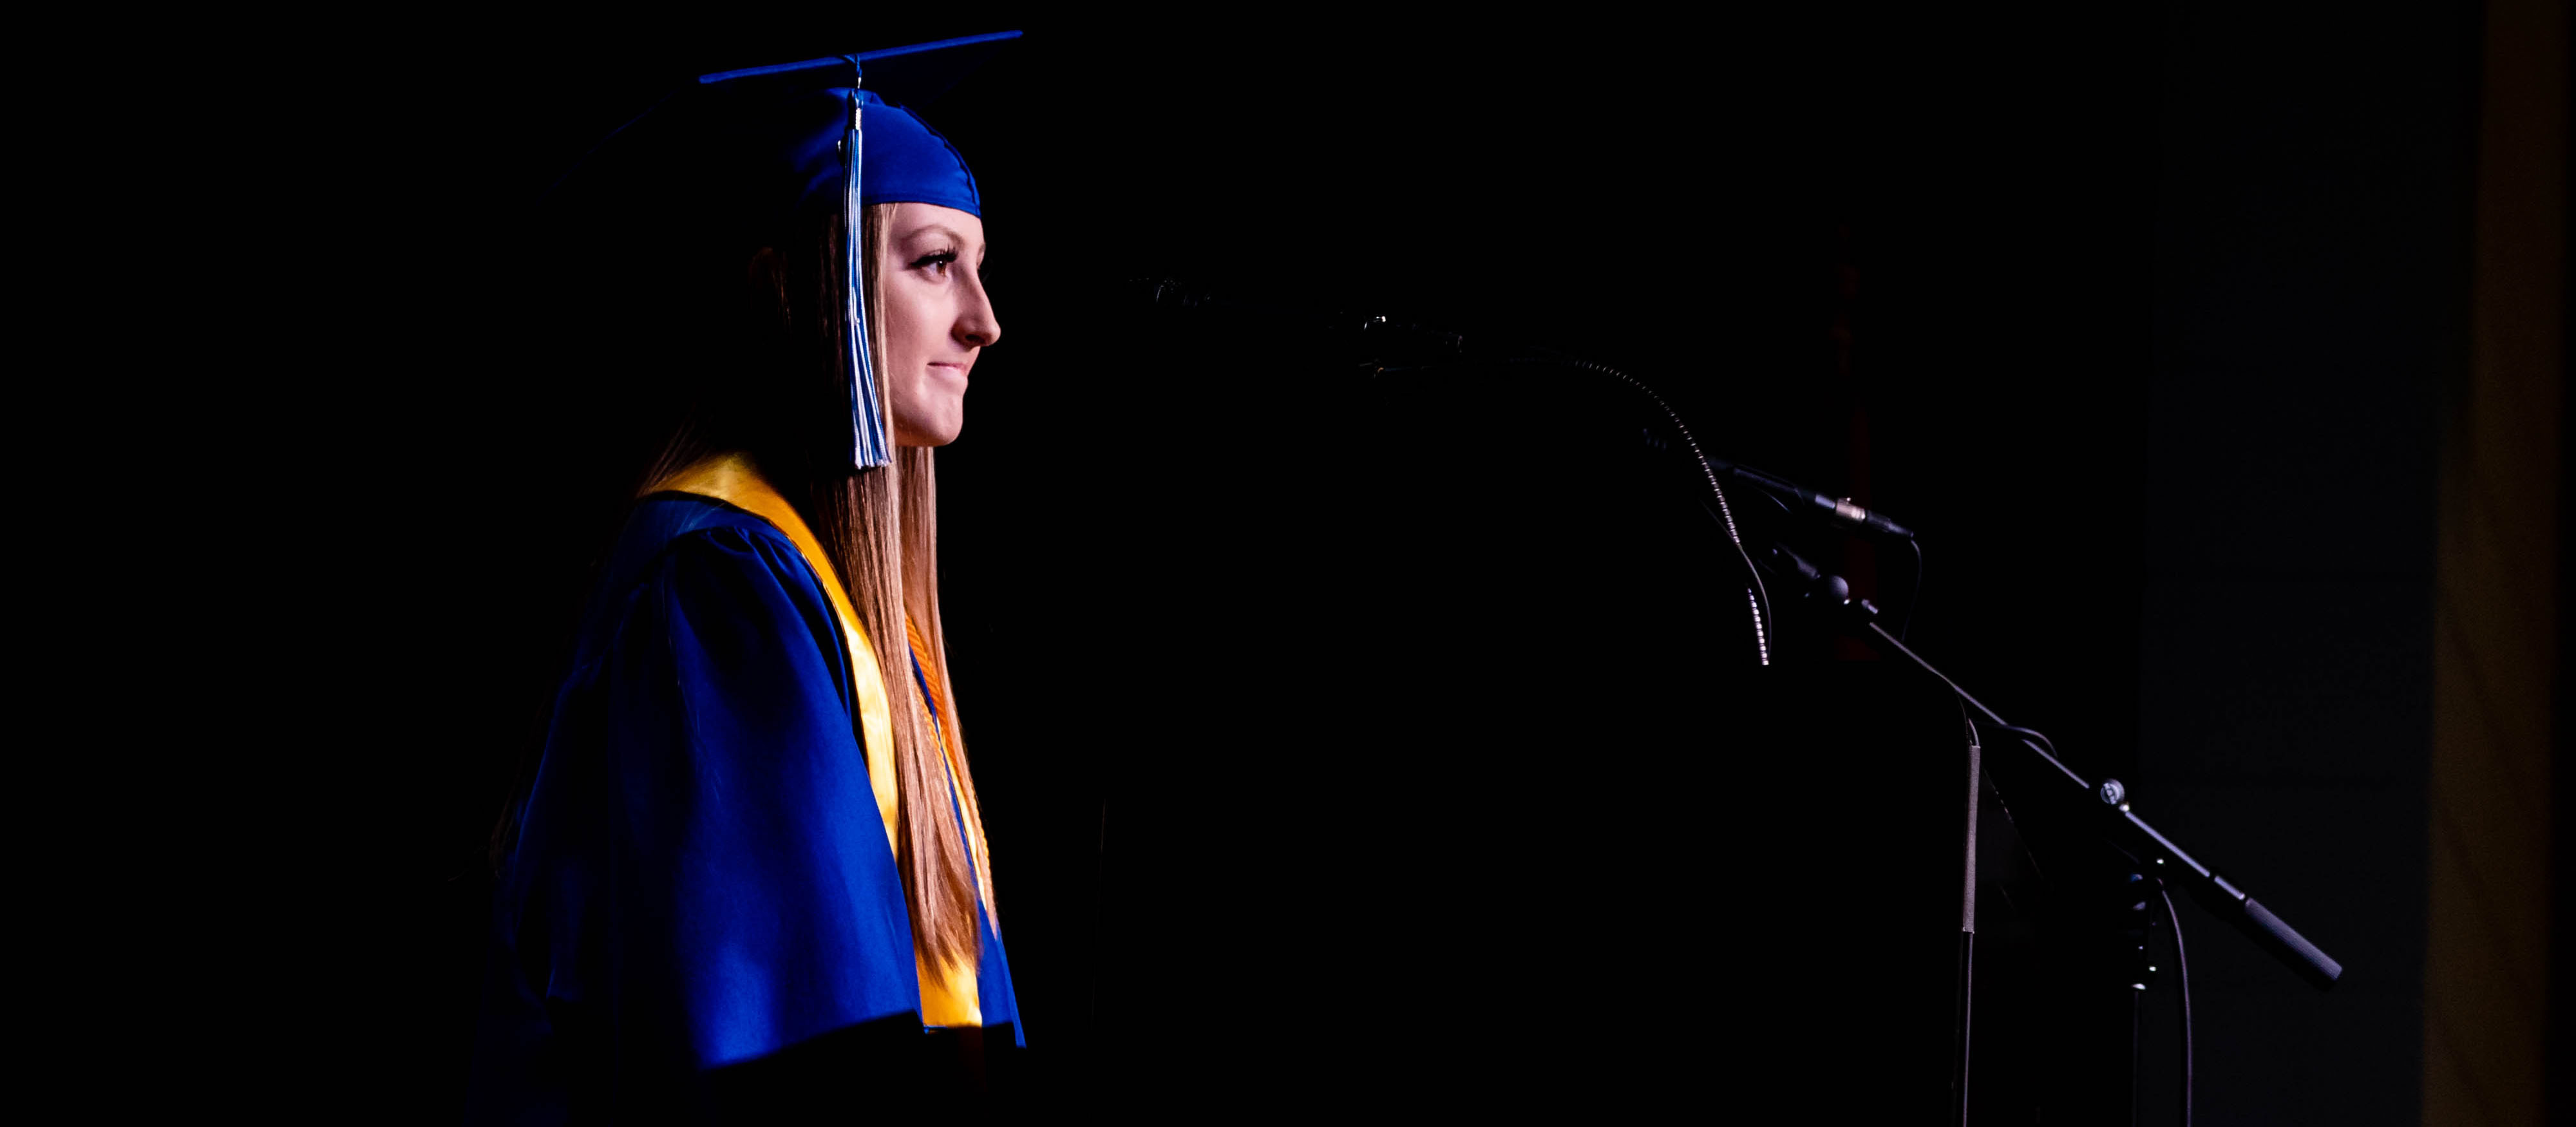 Vignette photo of a graduate speaking at Bald Knob 2020 graduation